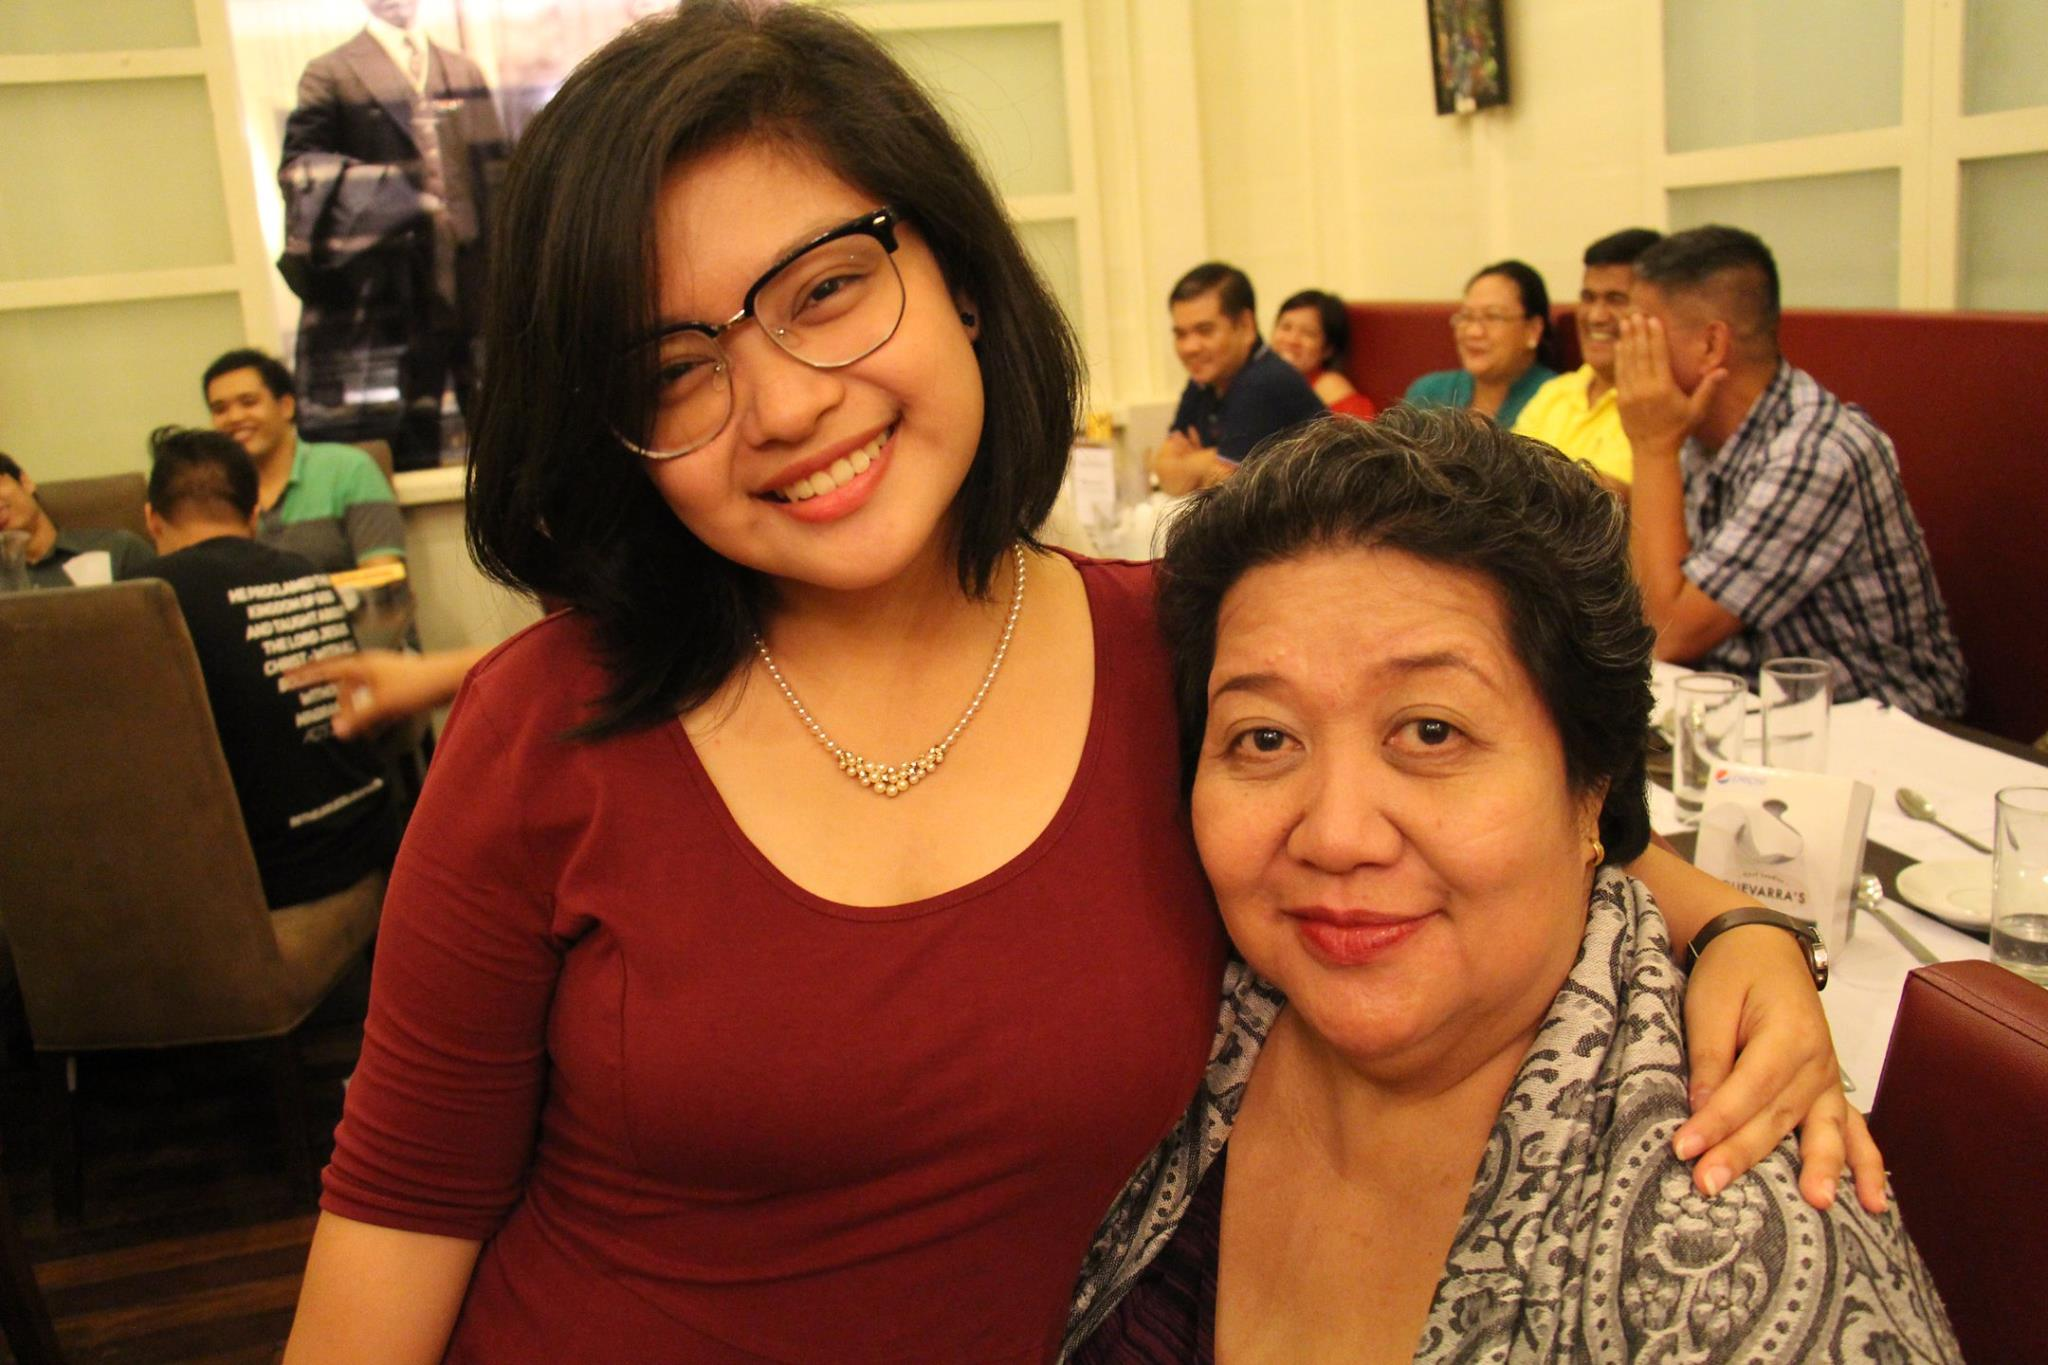 Recipe for Love: A Mother's Legacy and A Daughter's Determination | www.familywiseasia.com